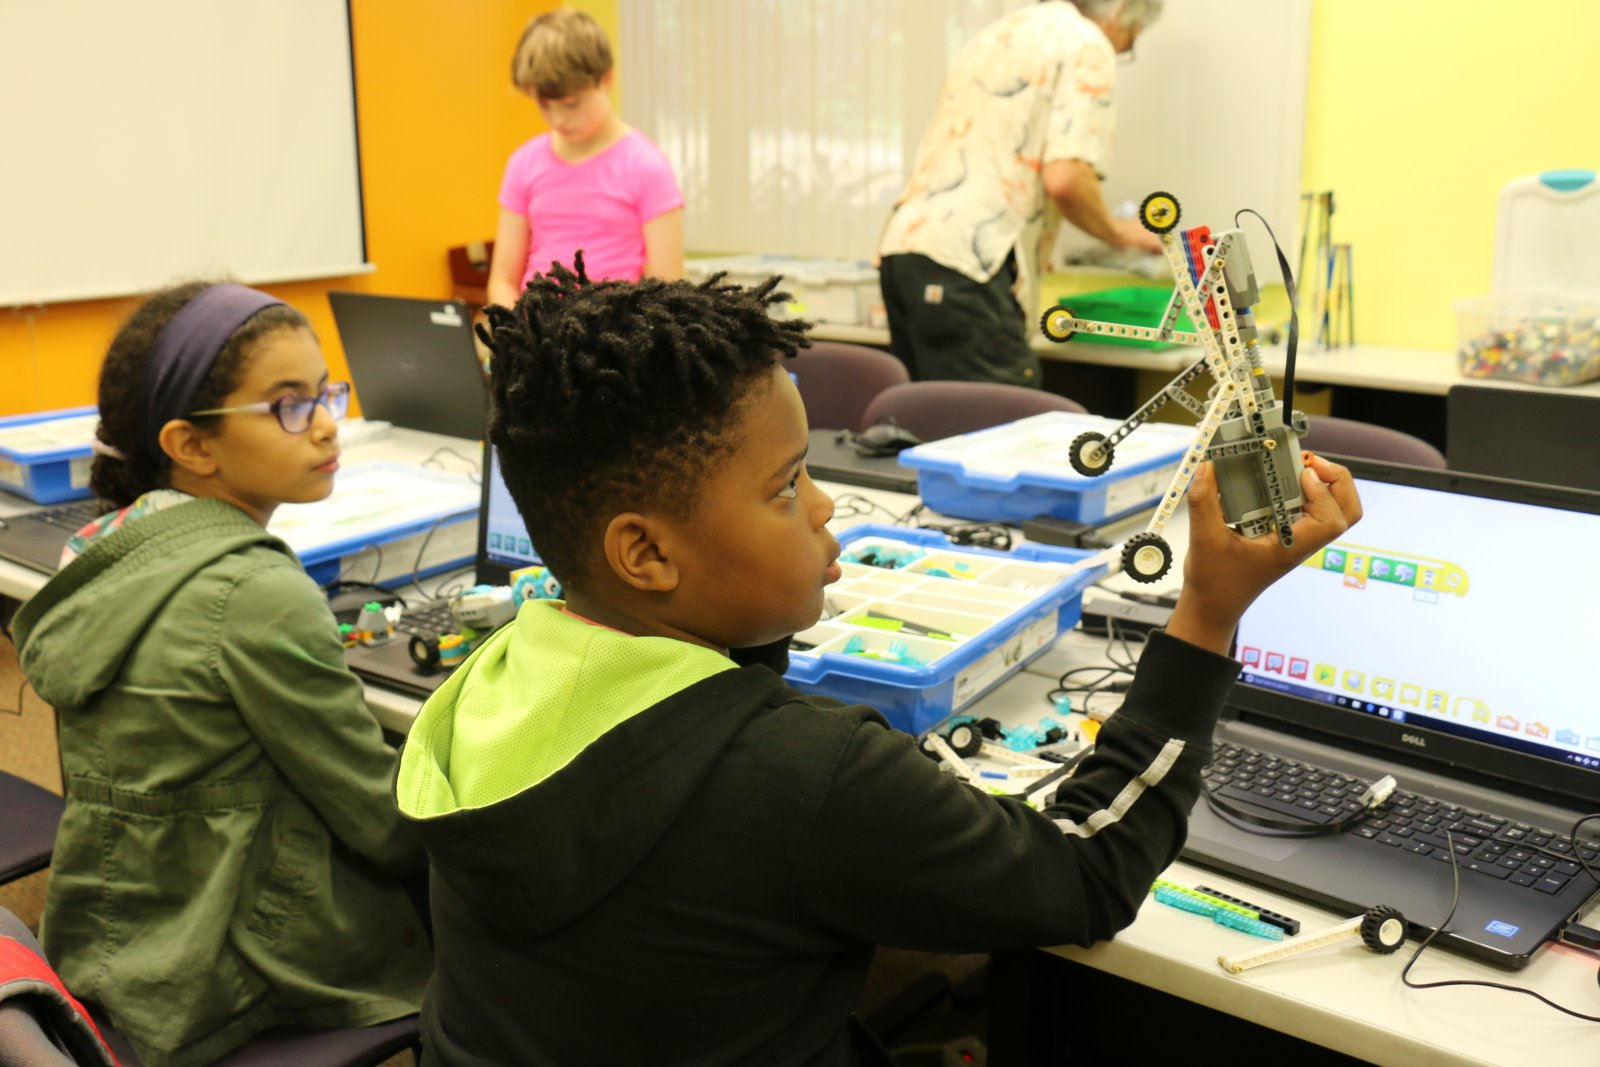 Students working with LEGOs in a Saturday Academy camp